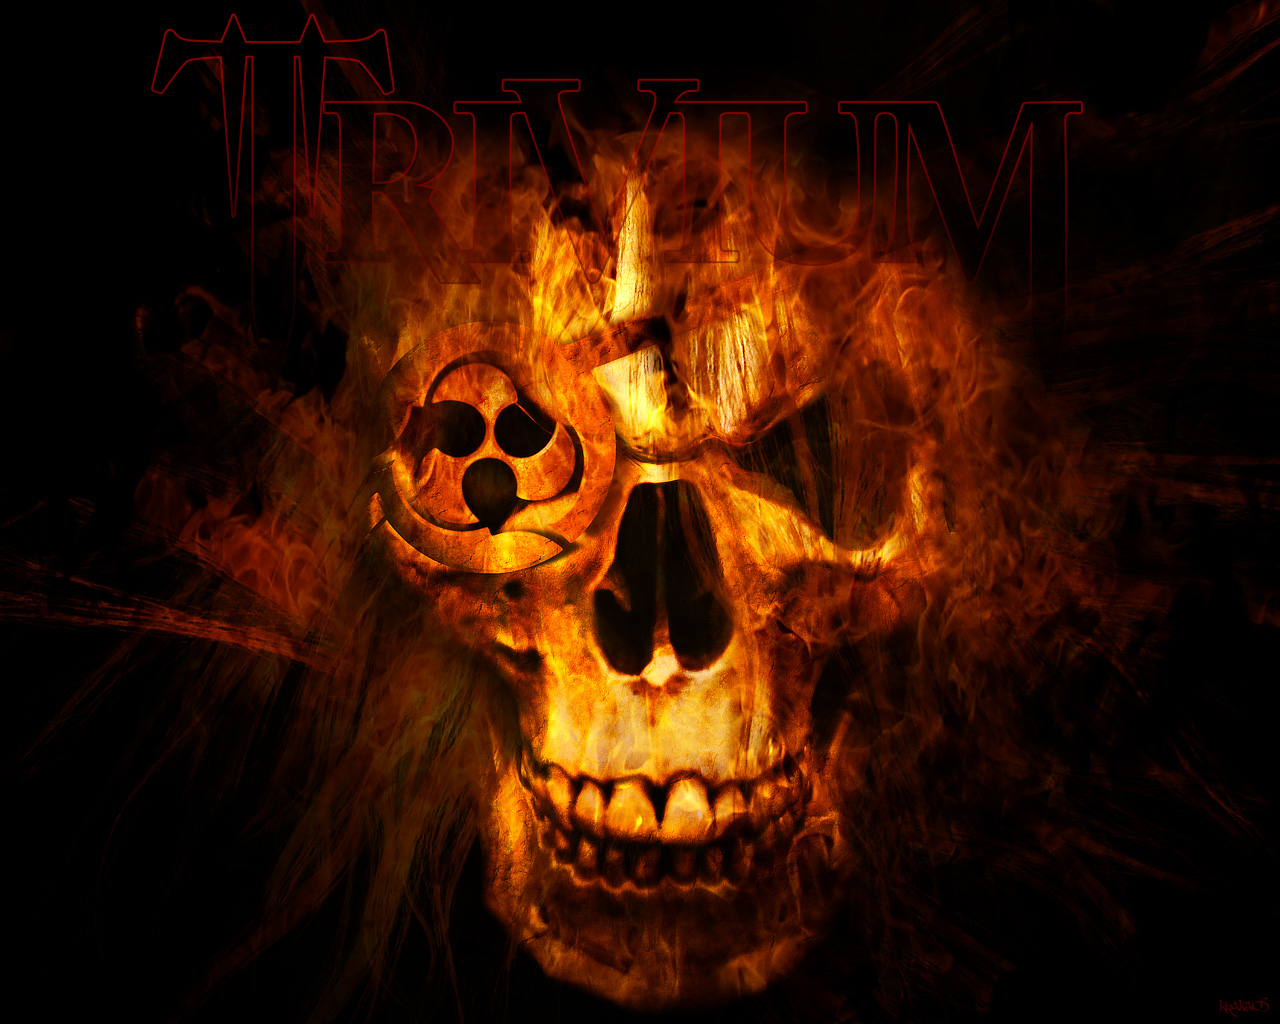 http://4.bp.blogspot.com/-9MiMVaq-SNU/Tf5MDGulMAI/AAAAAAAAAFk/Ft98dHILD5Q/s1600/Trivium___Eye_of_the_Death_by_krakaos.jpg